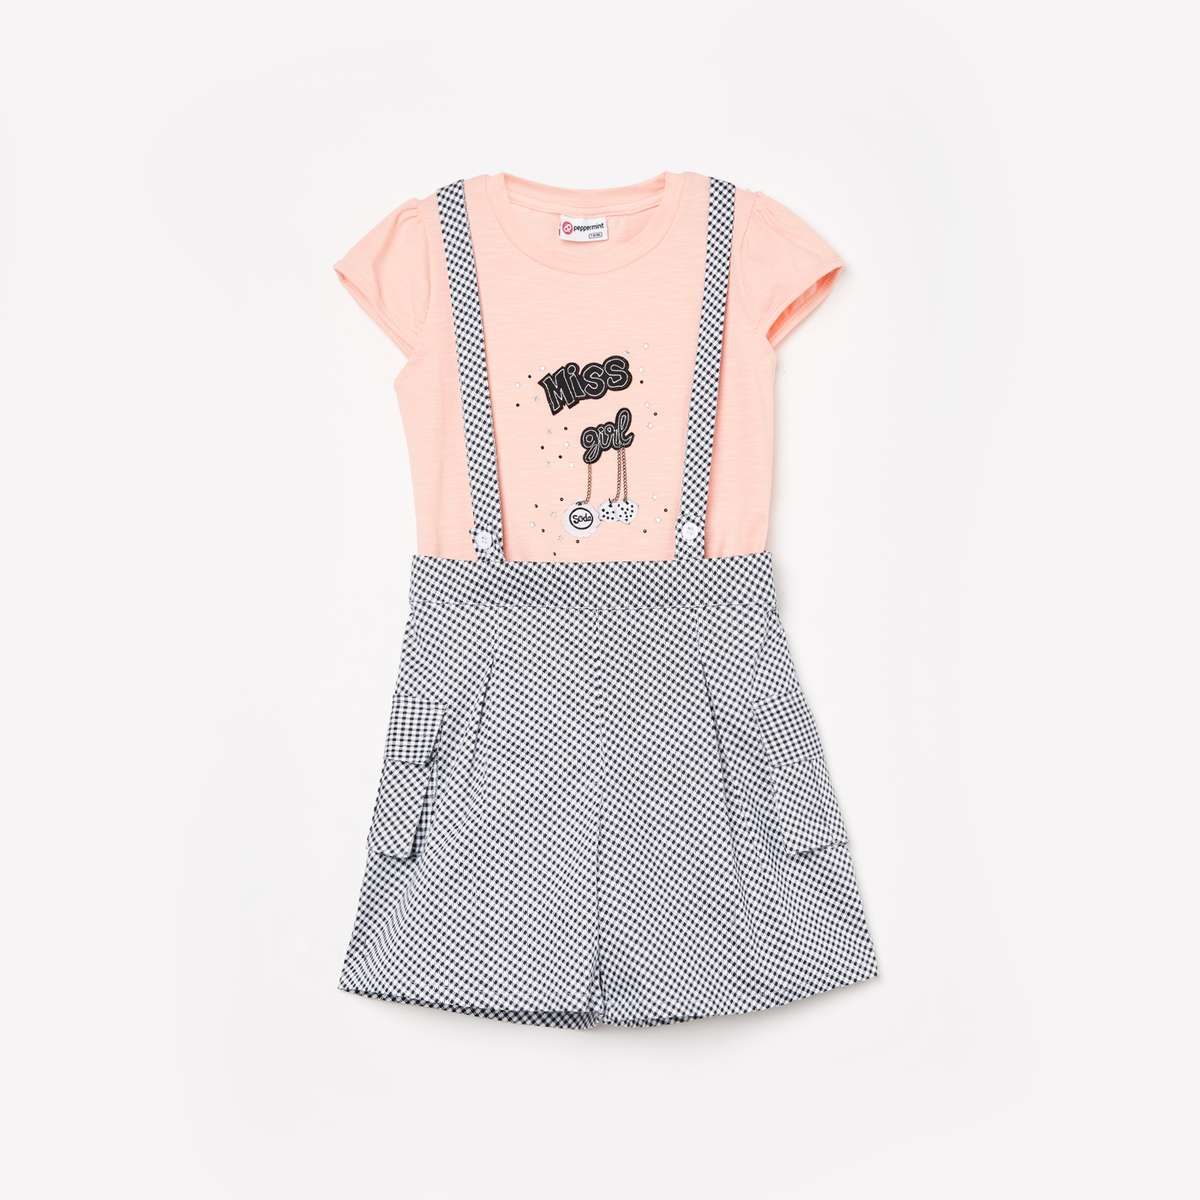 PEPPERMINT Girls Dungaree with Printed Top